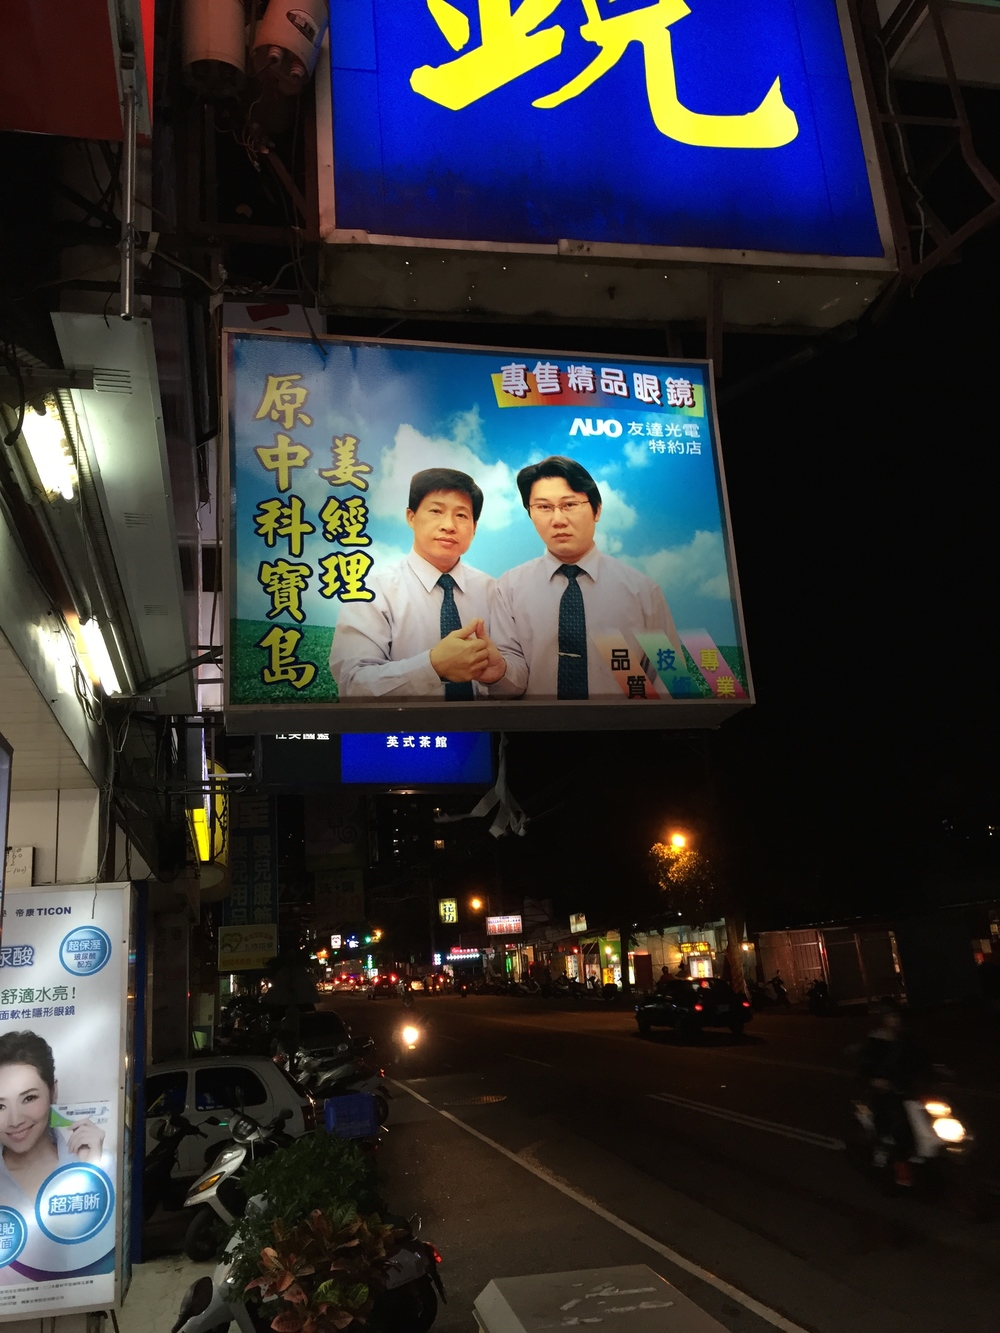 We saw a number of similar billboards around Taichung; I have no idea what's up with them.